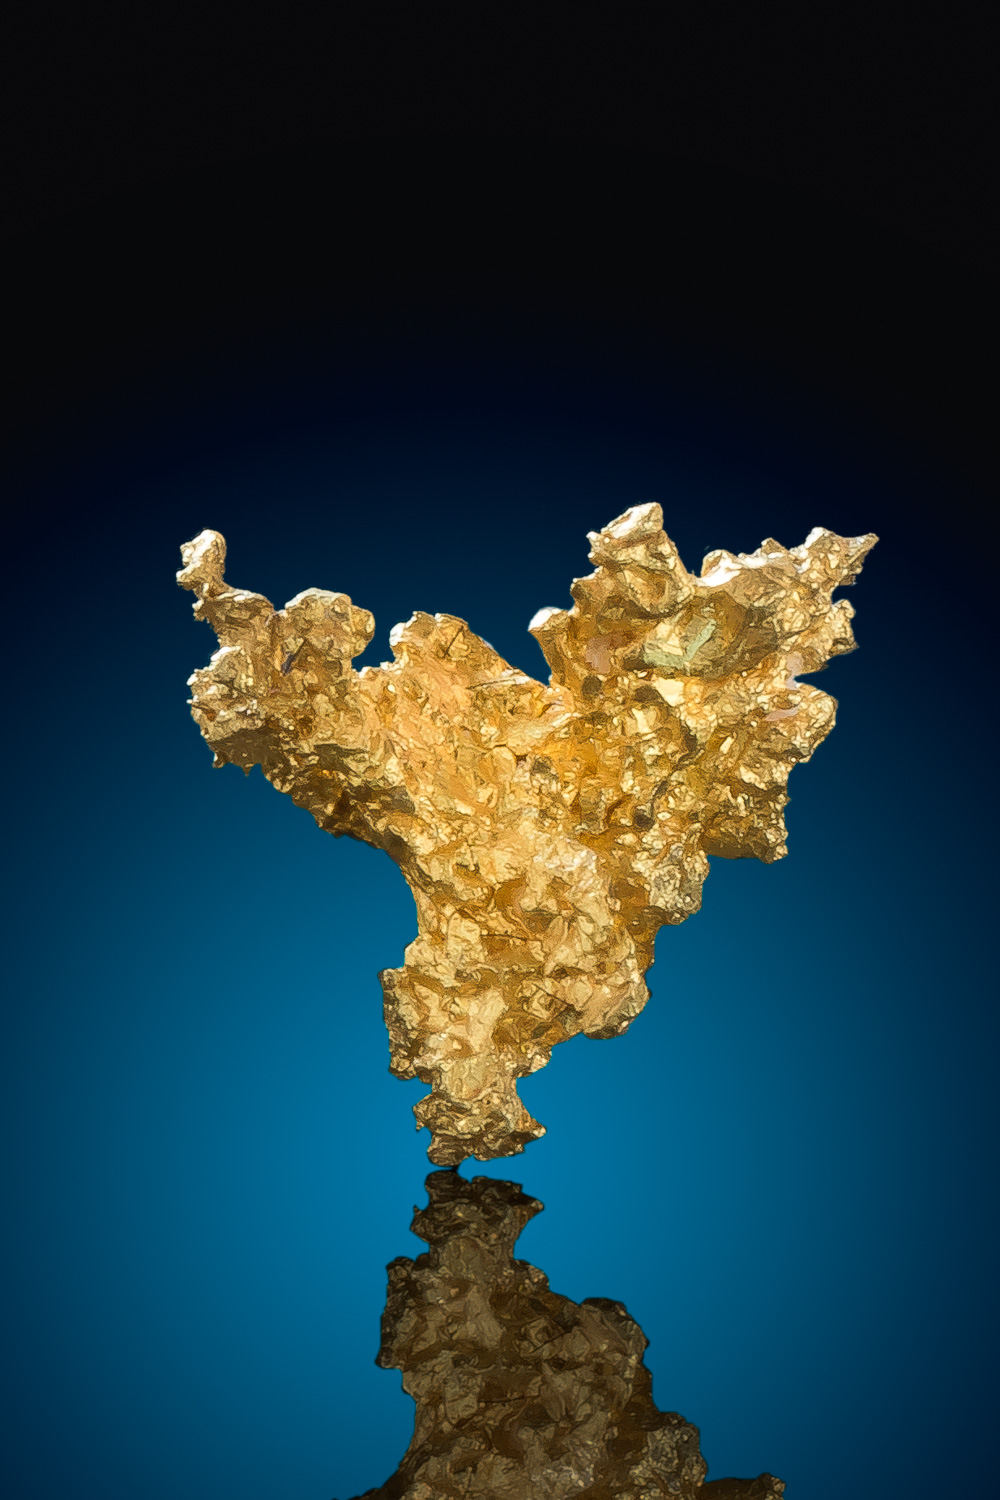 Beautiful Triangular Crystalline Gold Nugget - Eagles Nest Mine